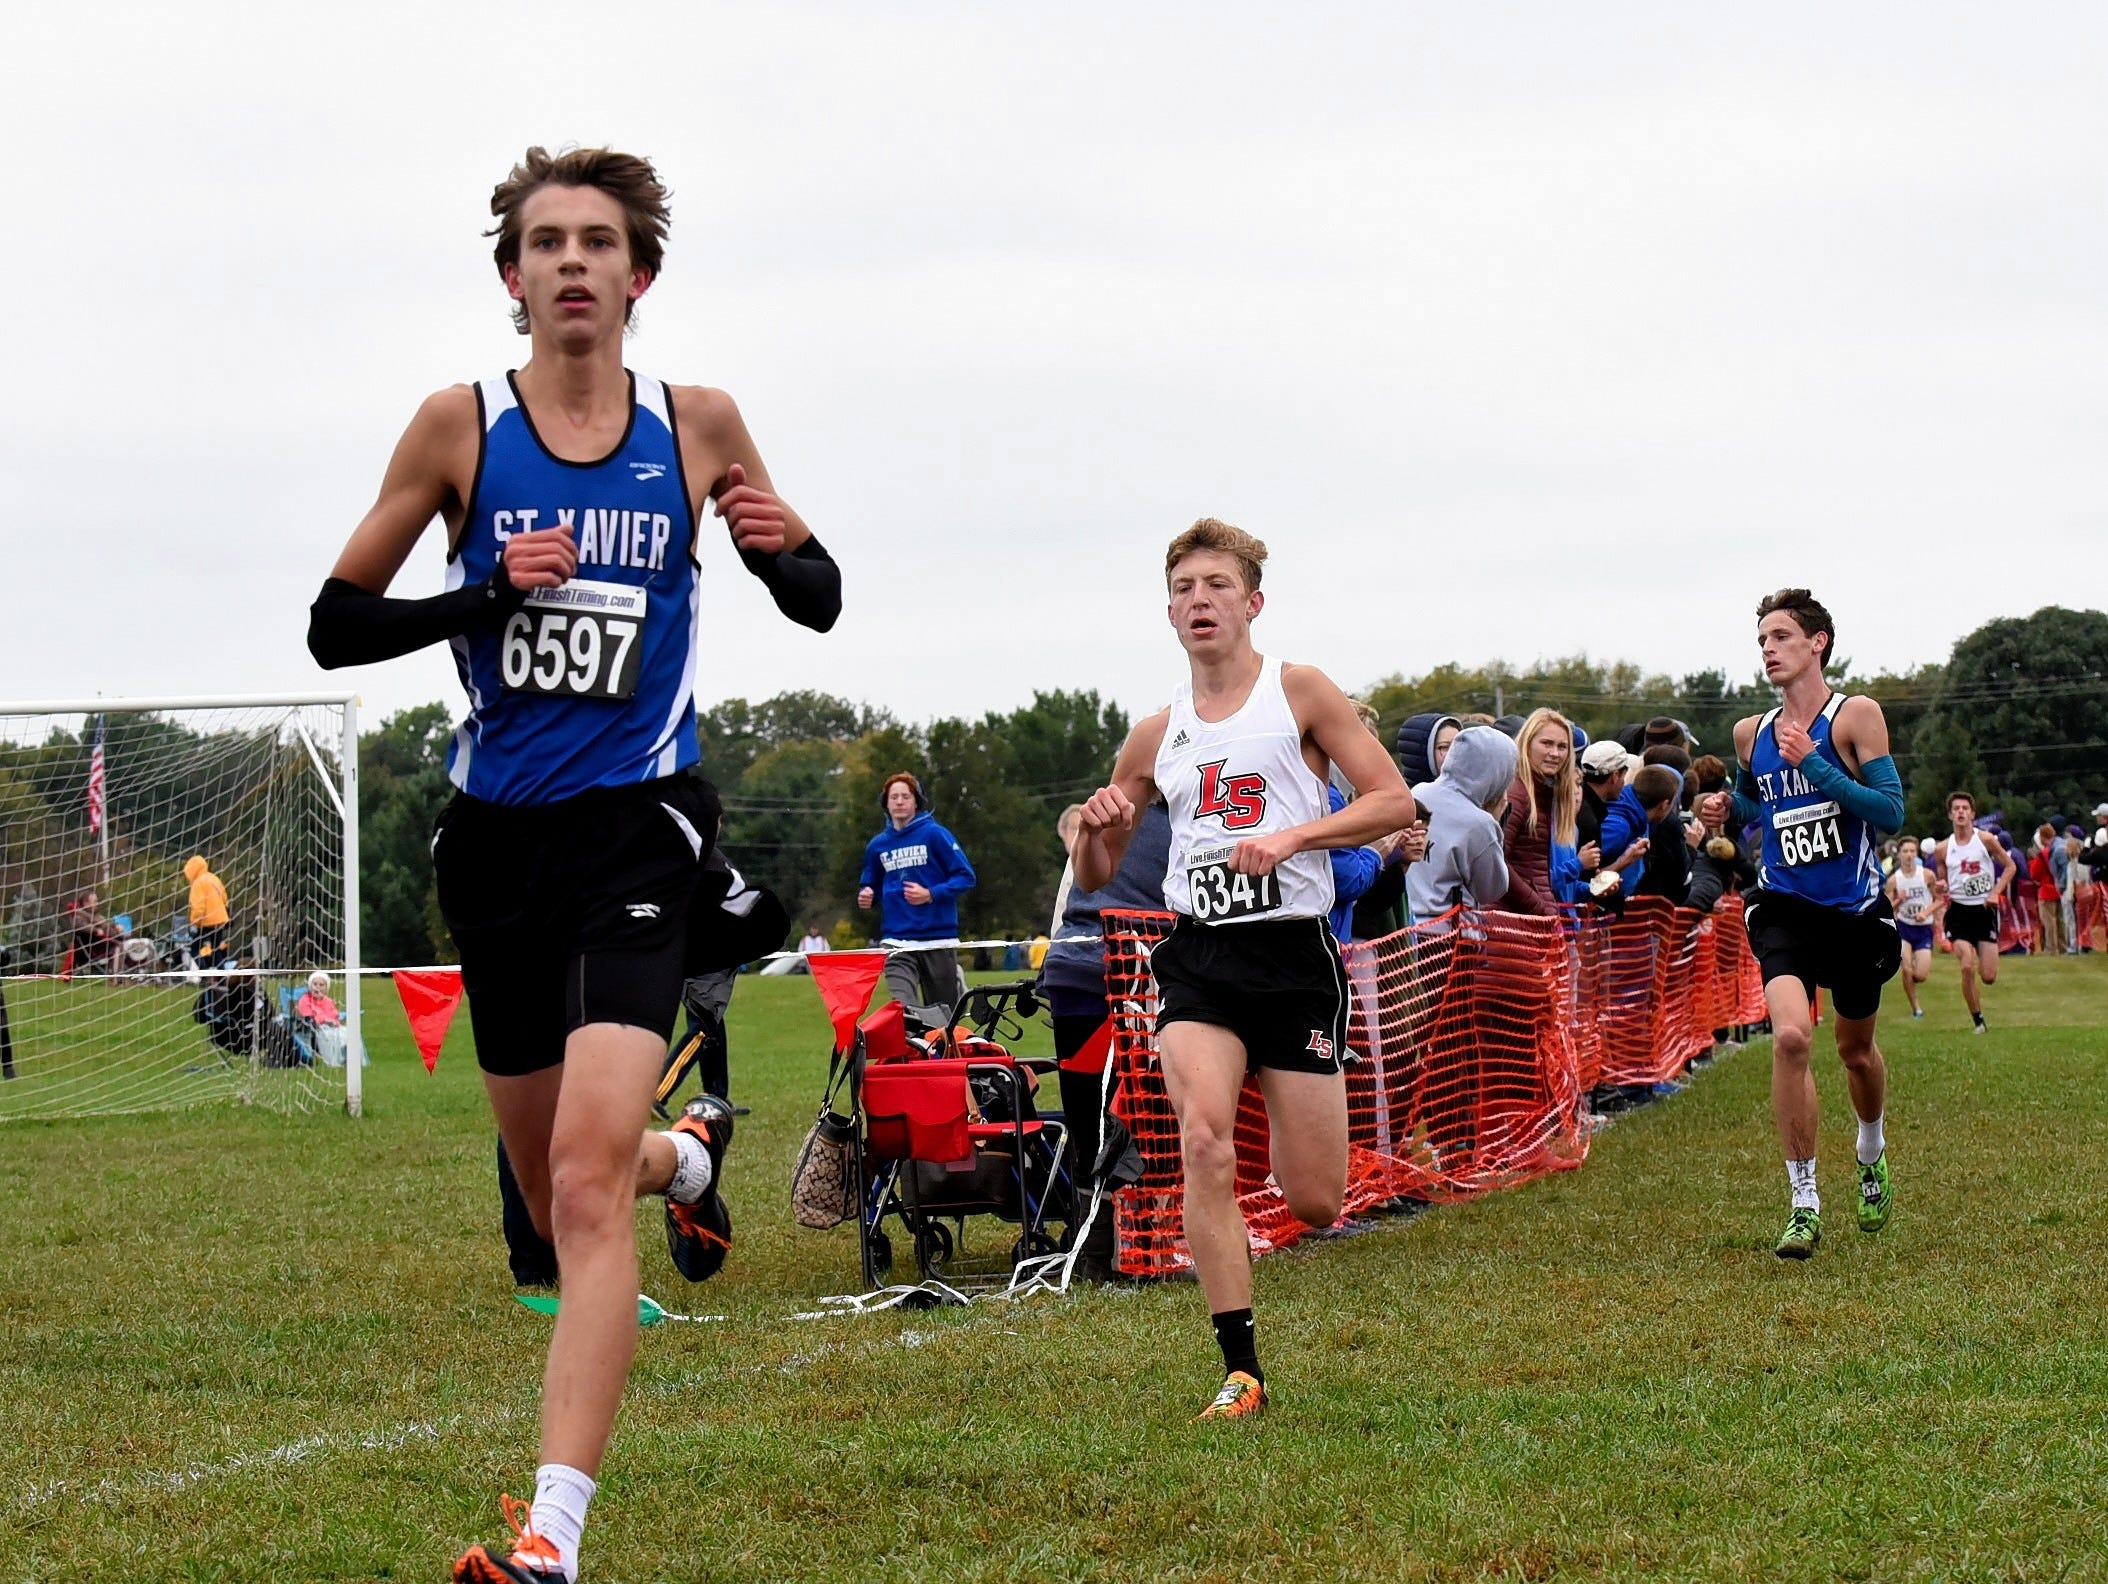 St. Xavier's Nick Mills, Ryan Crail of La Salle and Thomas Walters of St. Xavier finish 6,7 and 8 at the 2018 GCL/GGCL Cross Country Championships, October 13, 2018.